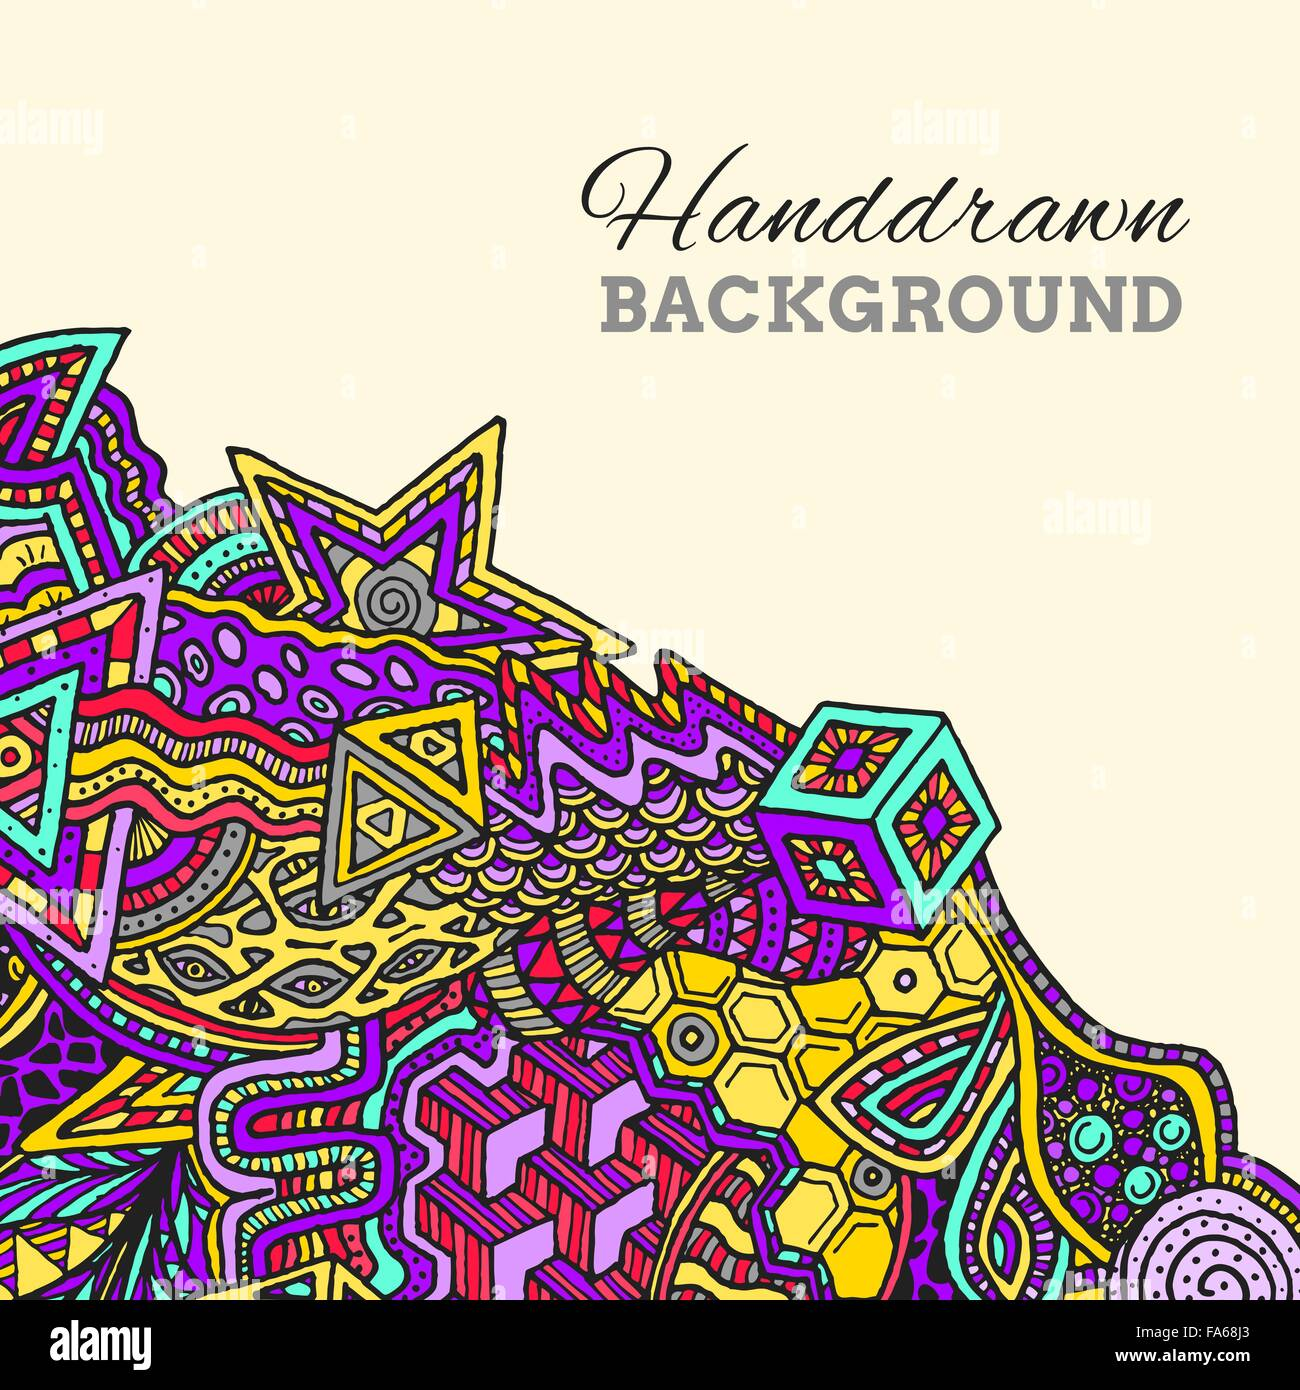 vector violet yellow color abstract zentangle hand drawn doodle background illustration on light background